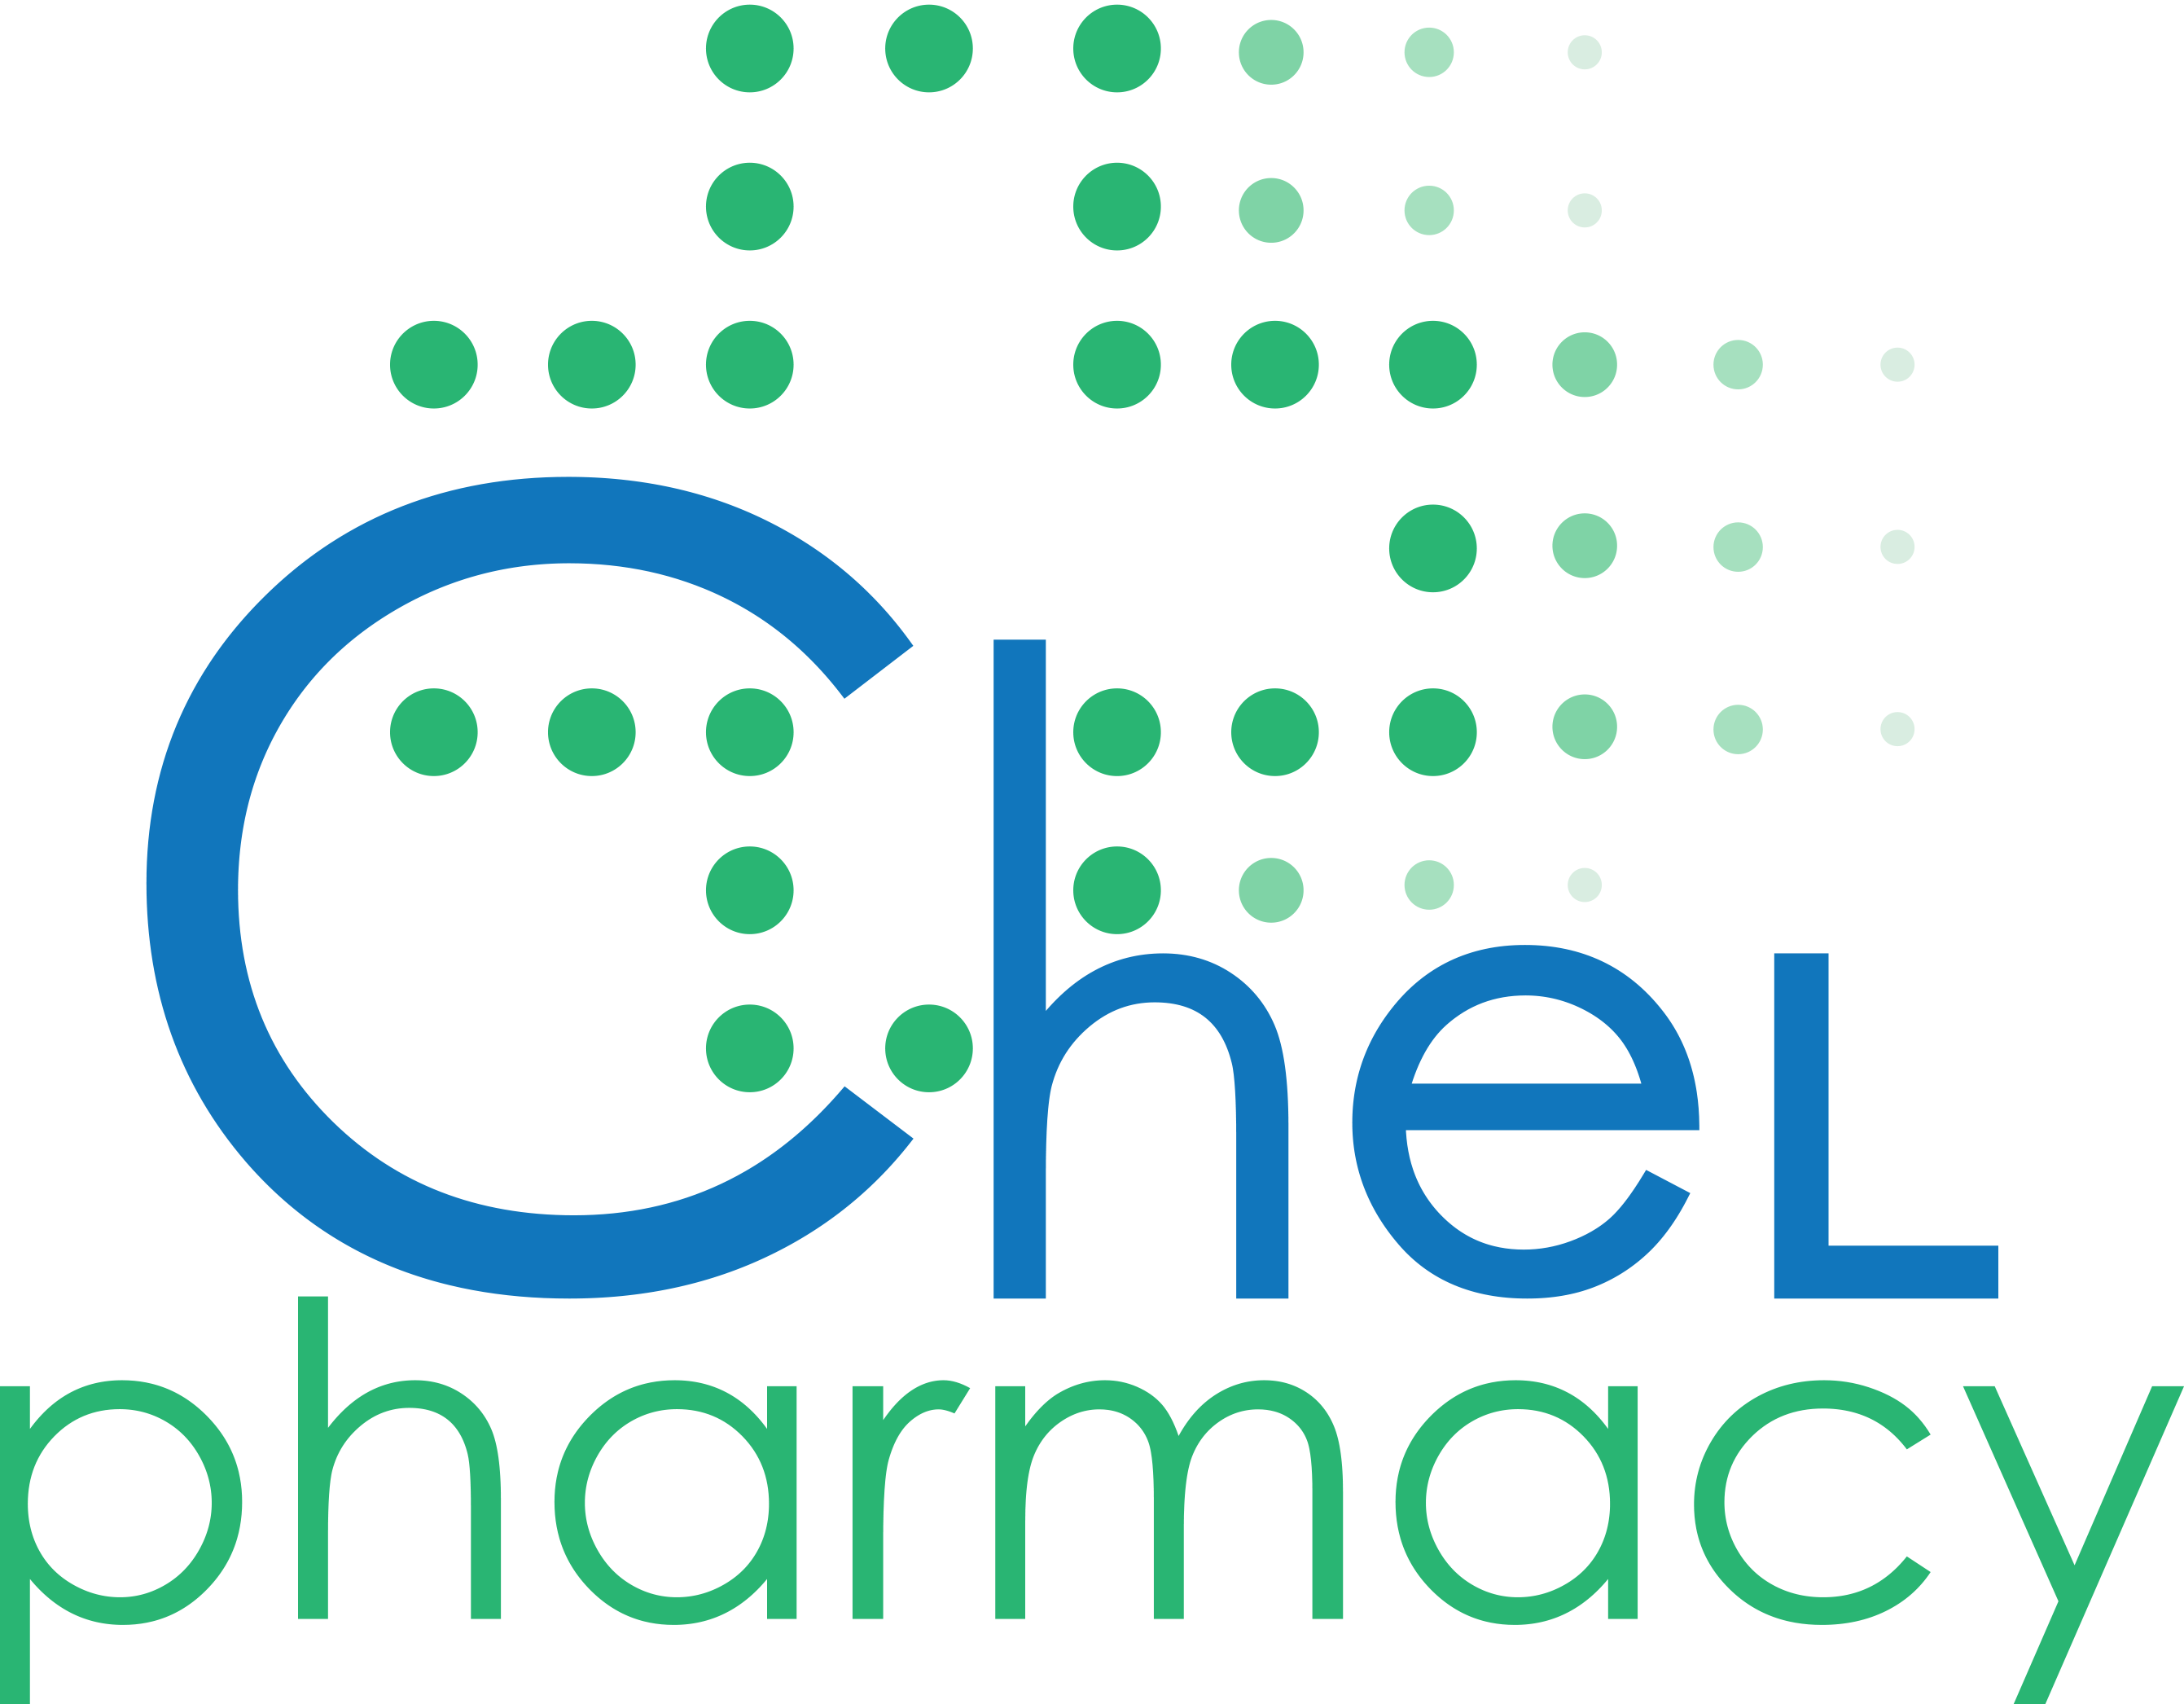 Chel Pharmacy